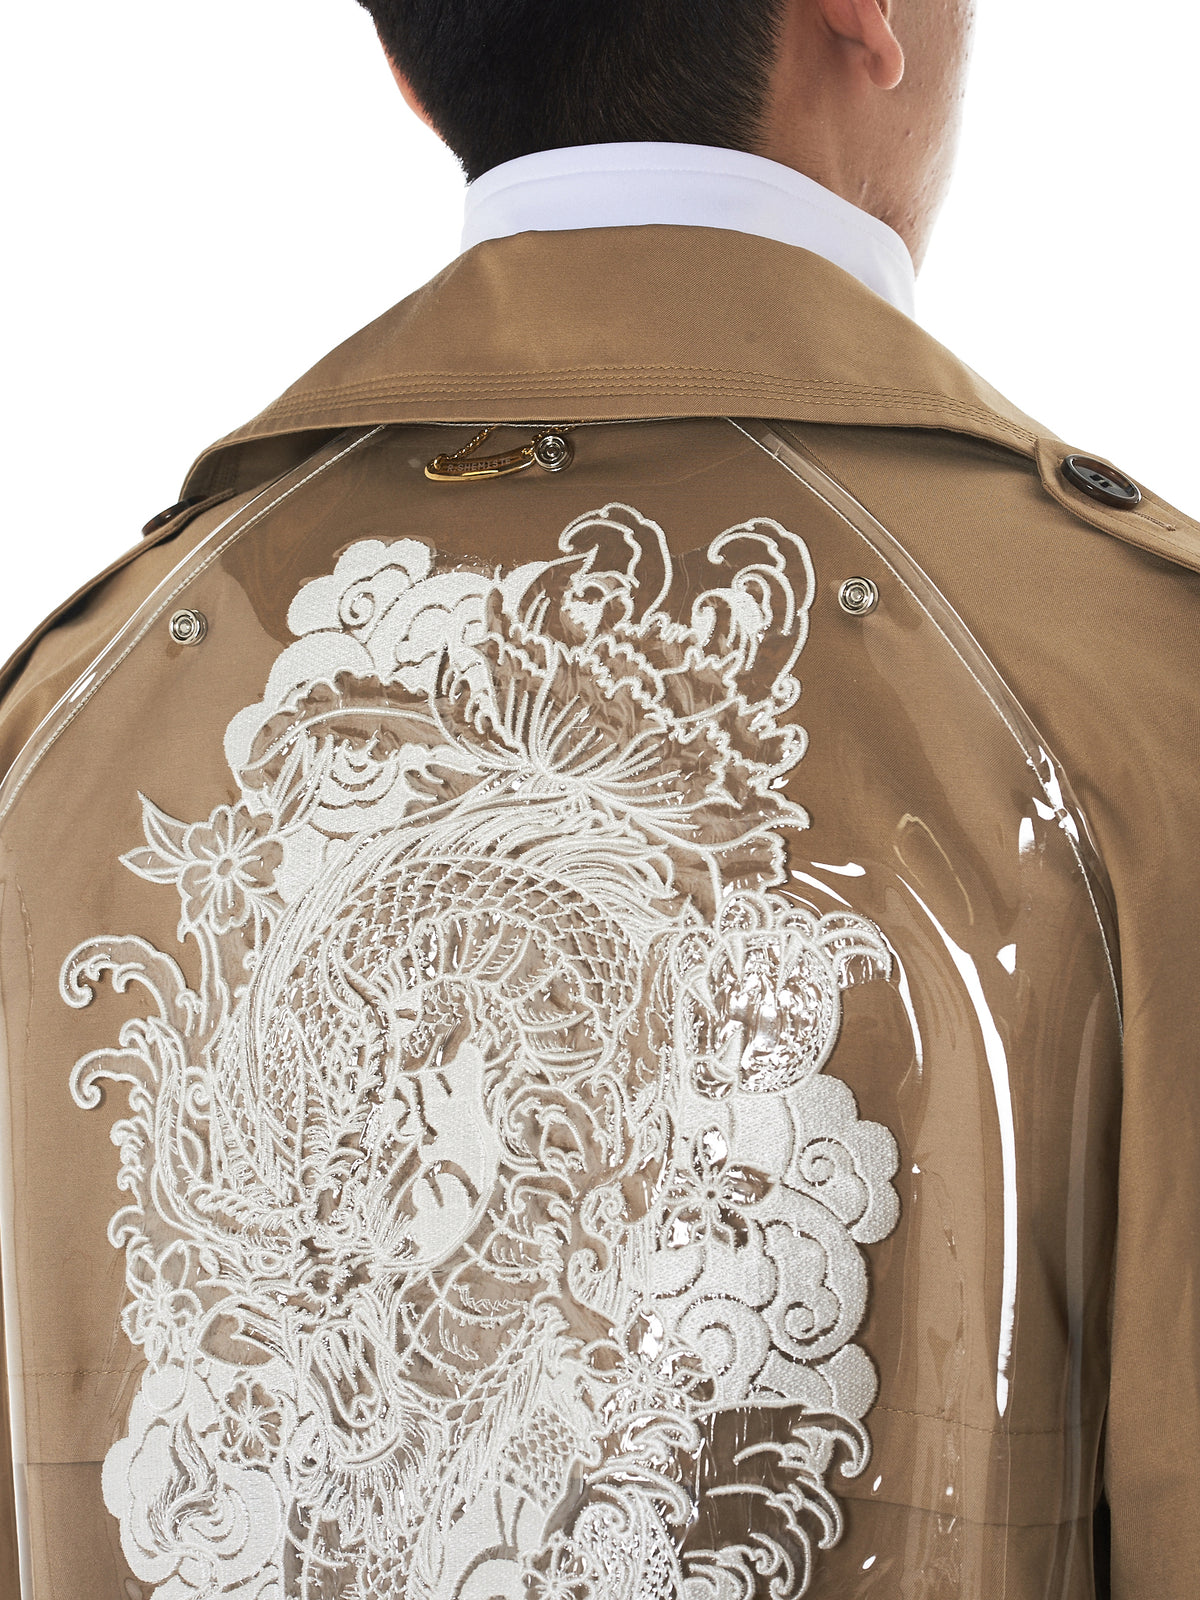 R. Shemiste Trench Coat - Hlorenzo graphic detail